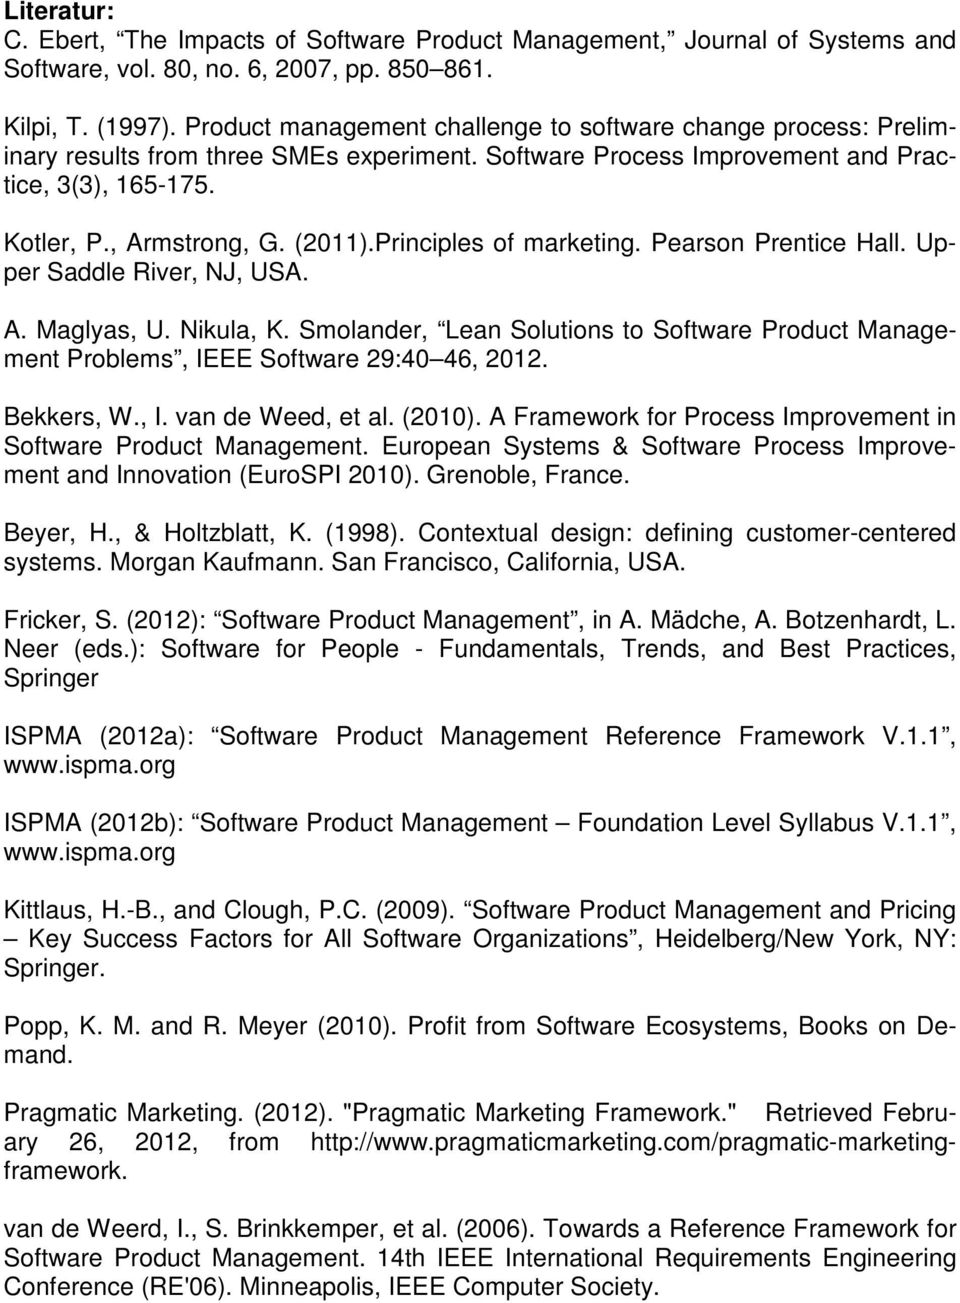 Principles of marketing. Pearson Prentice Hall. Upper Saddle River, NJ, USA. A. Maglyas, U. Nikula, K. Smolander, Lean Solutions to Software Product Management Problems, IEEE Software 29:40 46, 2012.